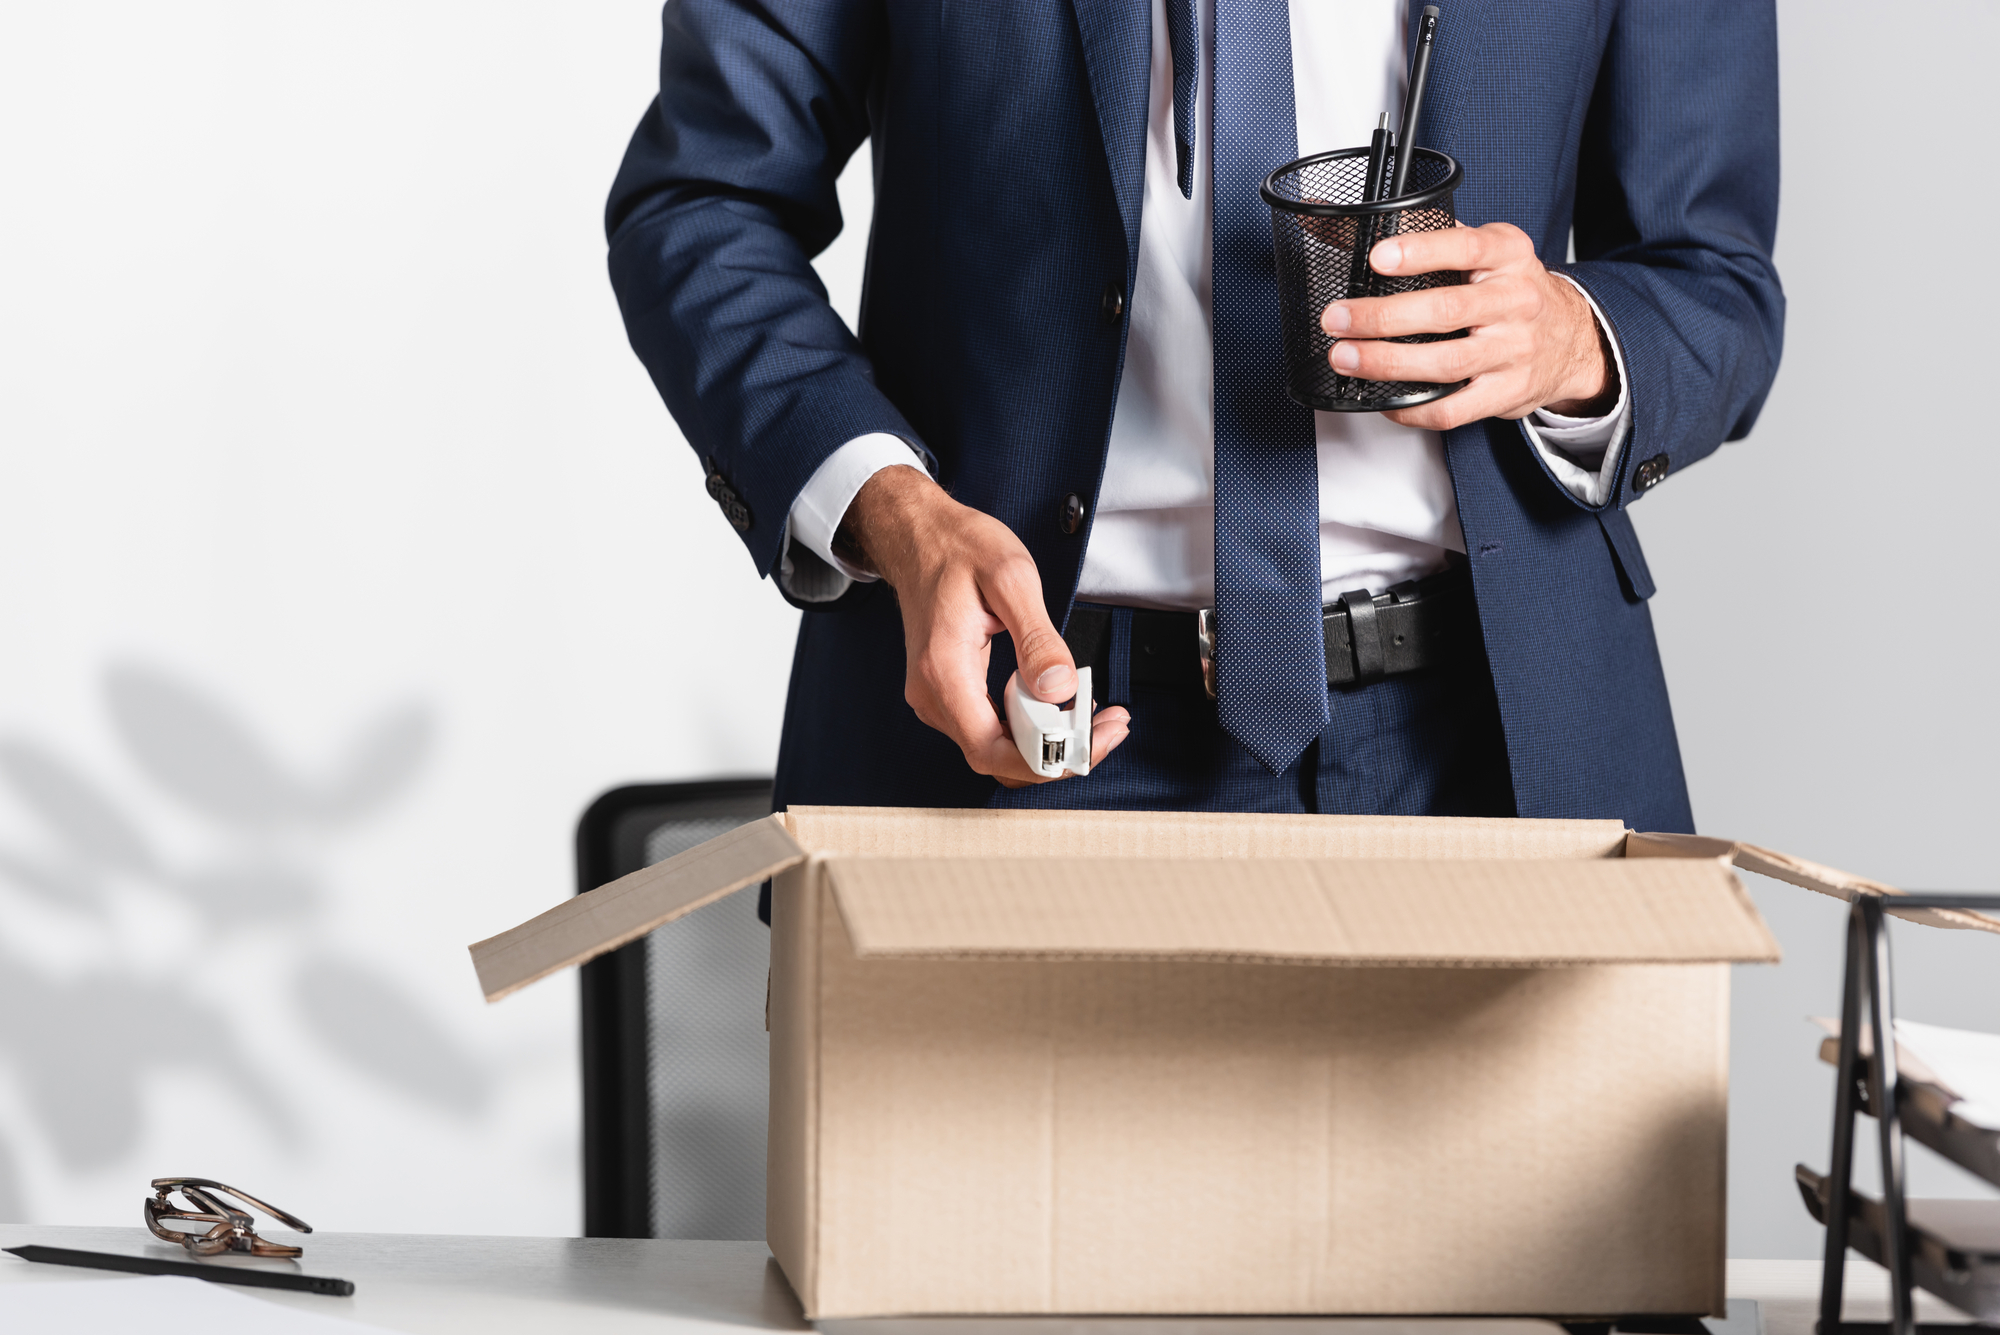 Medium shot of an individual in a business suit standing at a desk, placing personal items into a cardboard box as they prepare to leave the office after being terminated.